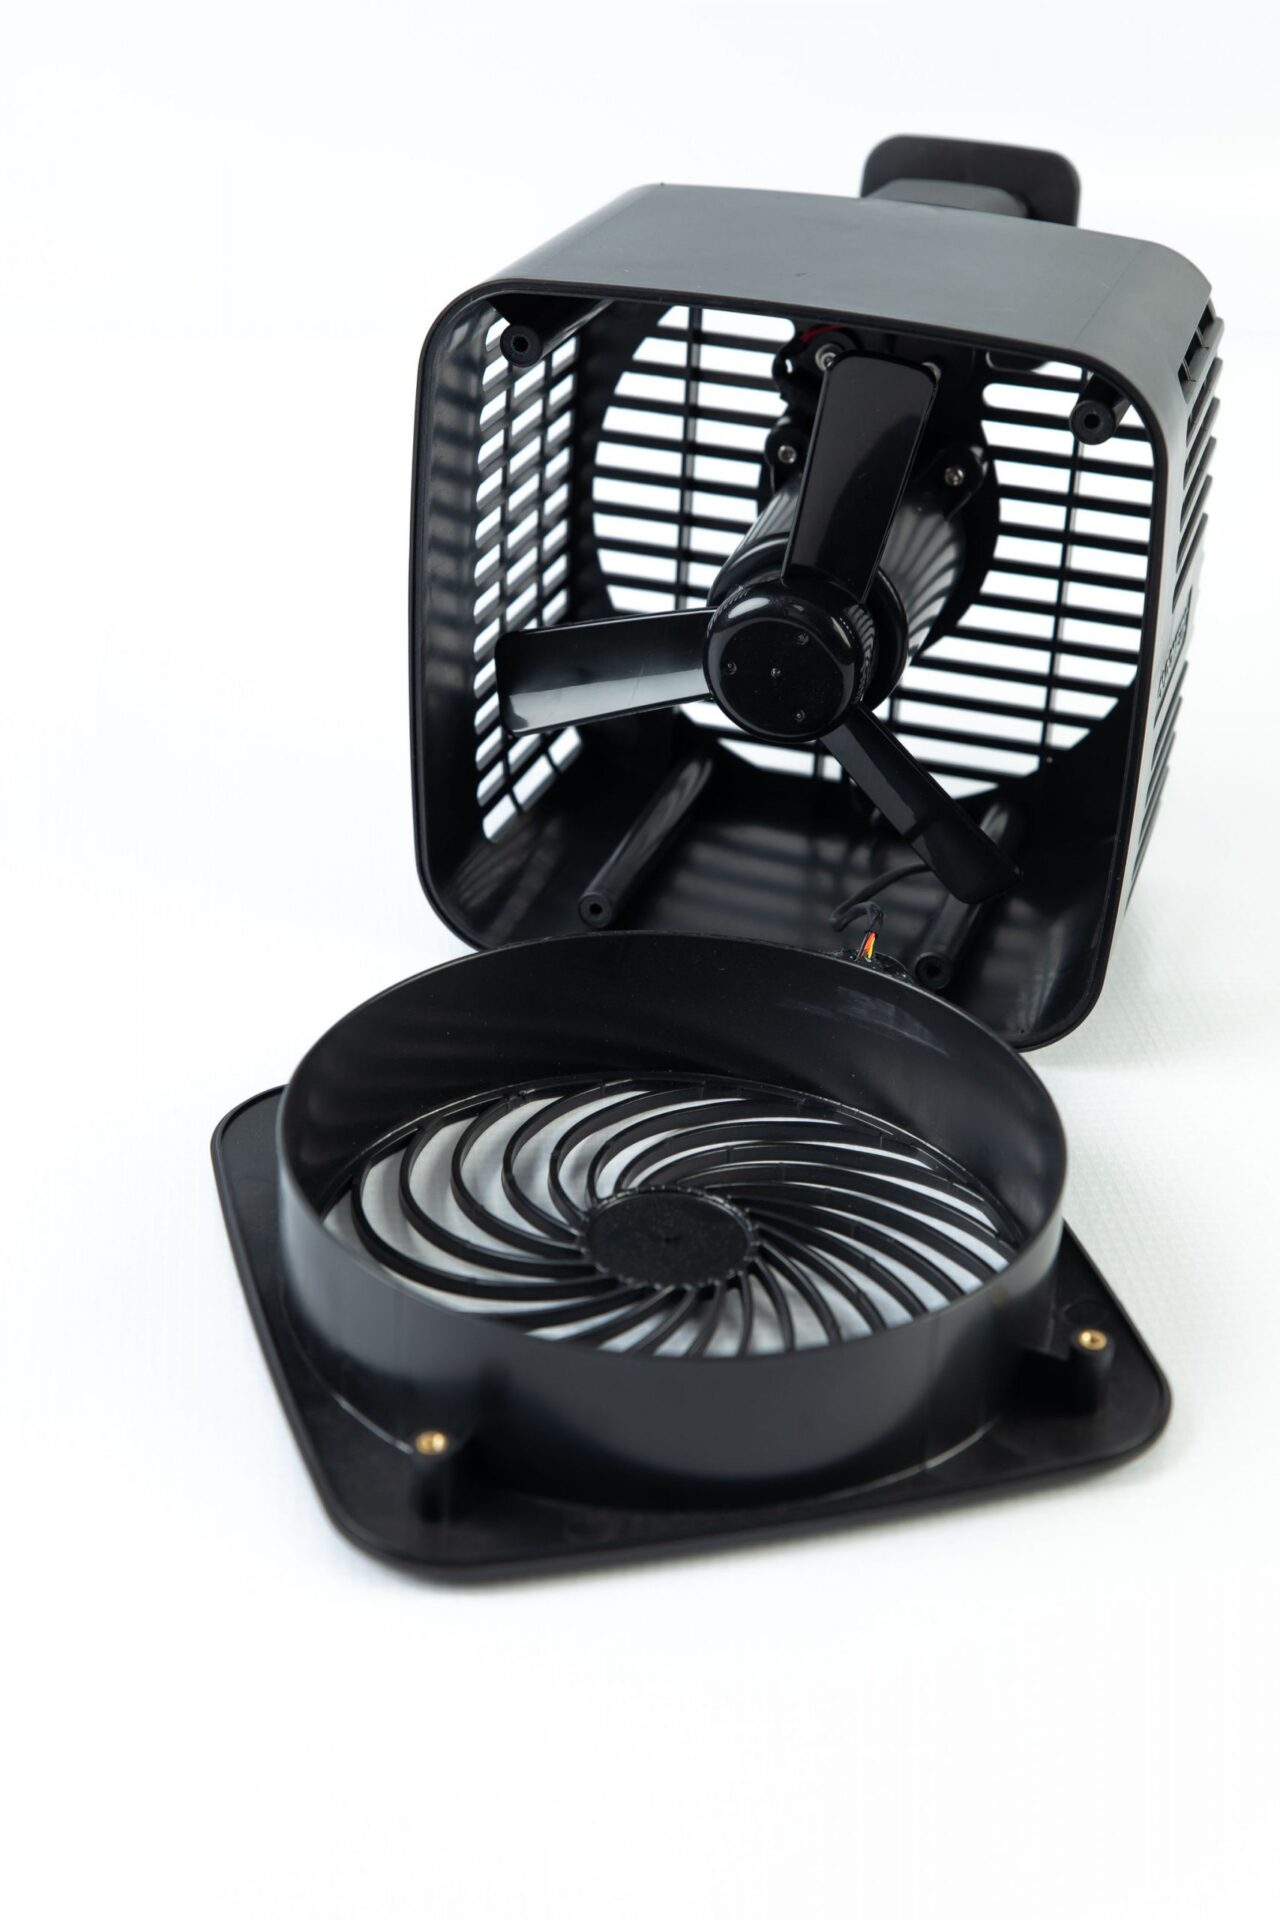 black plastic electric fan opened to view the inside